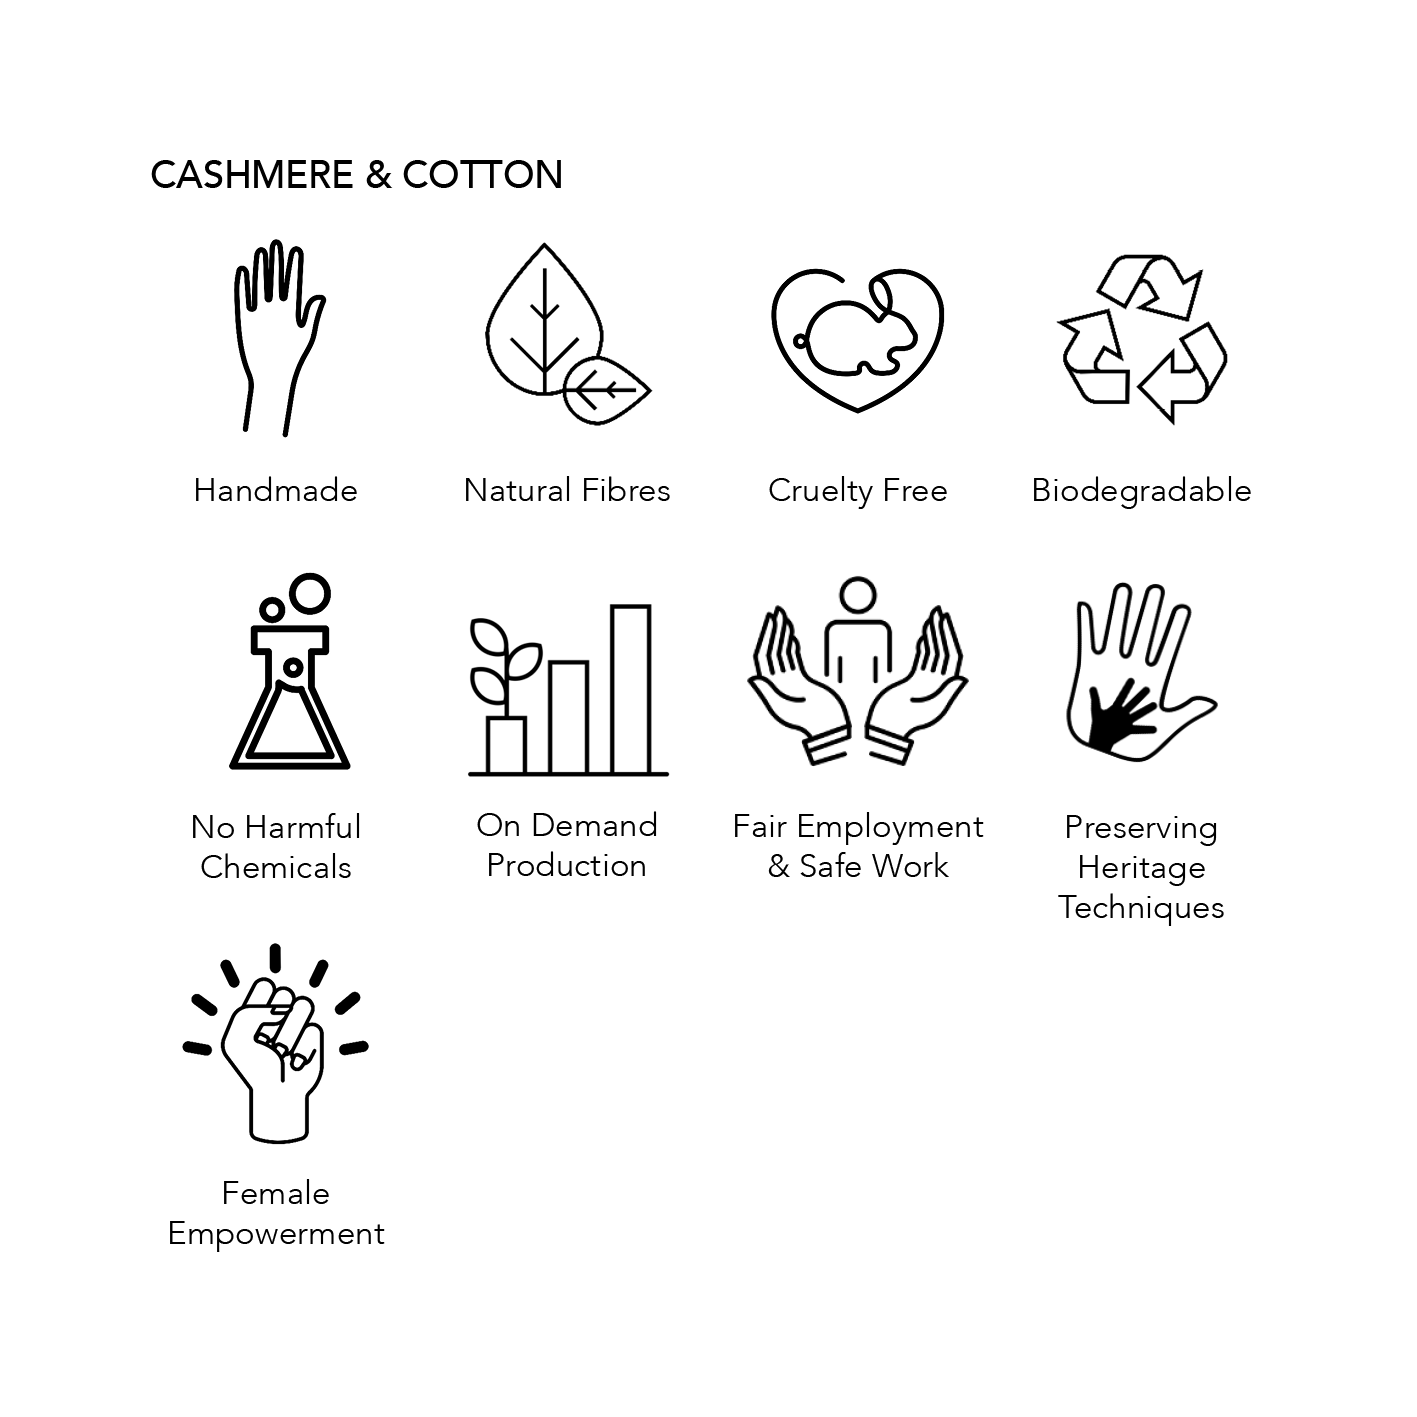 Thread Tales Cashmere & Cotton Blend Fabric Sustainability Credentials; handmade, natural fibres, cruelty free, biodegradable, no harmful chemicals, on demand production, fair employment and safe work, preserving heritage techniques, female empowerment